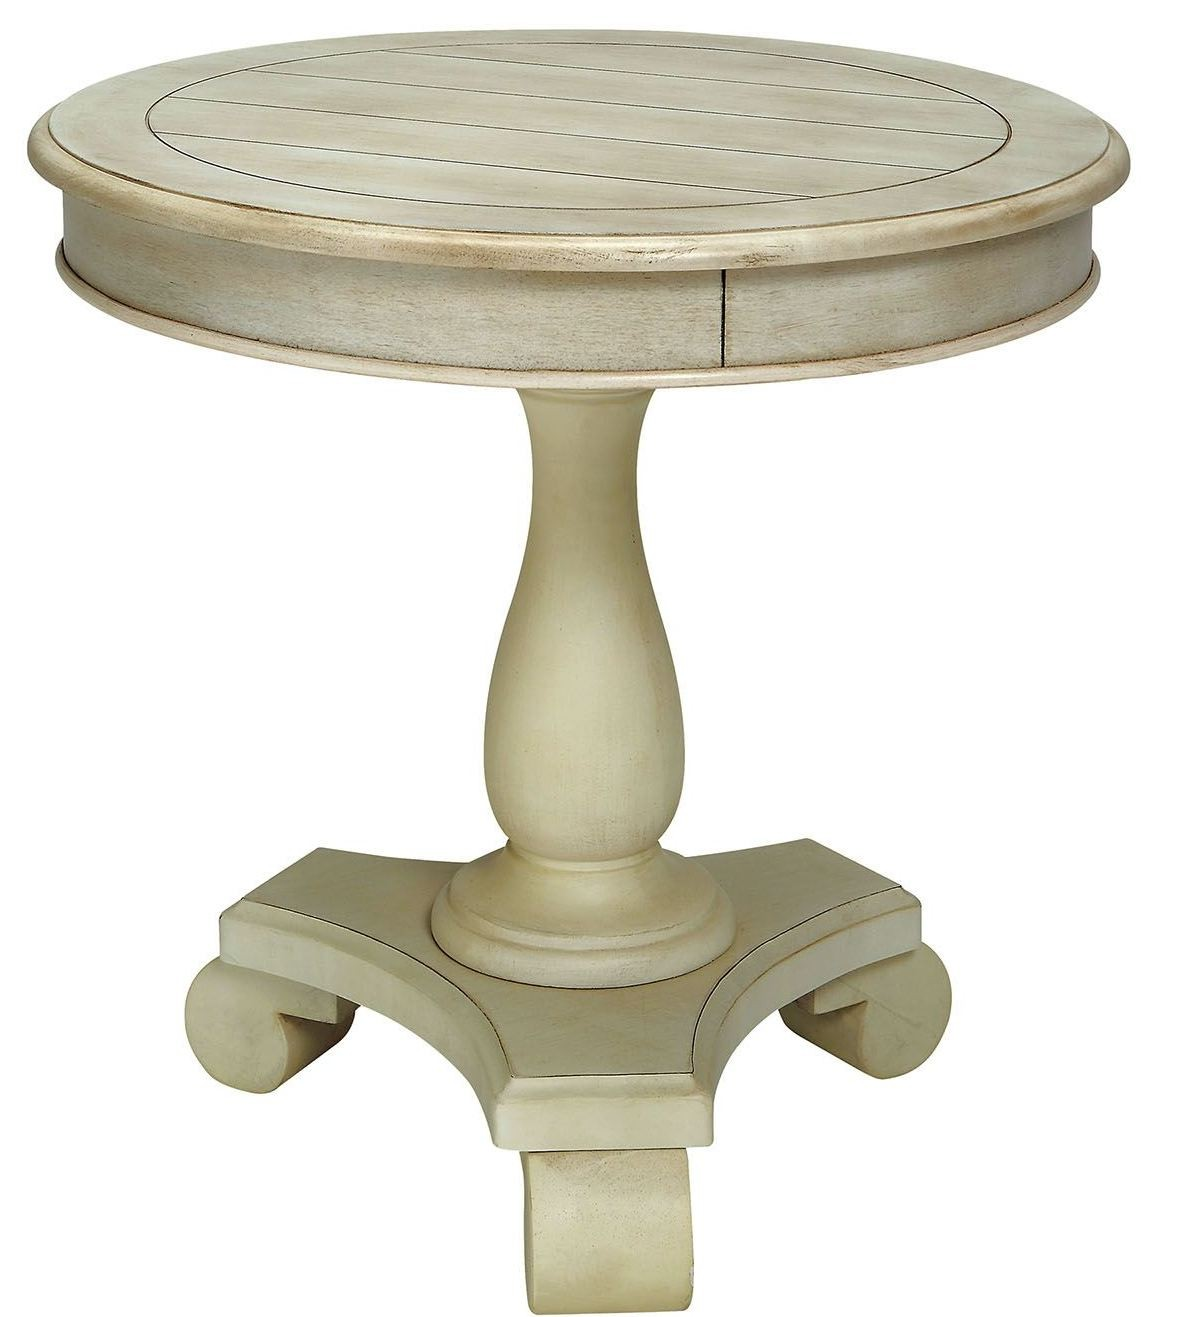 Kalea antique white round accent table from furniture of for Furniture of america customer service